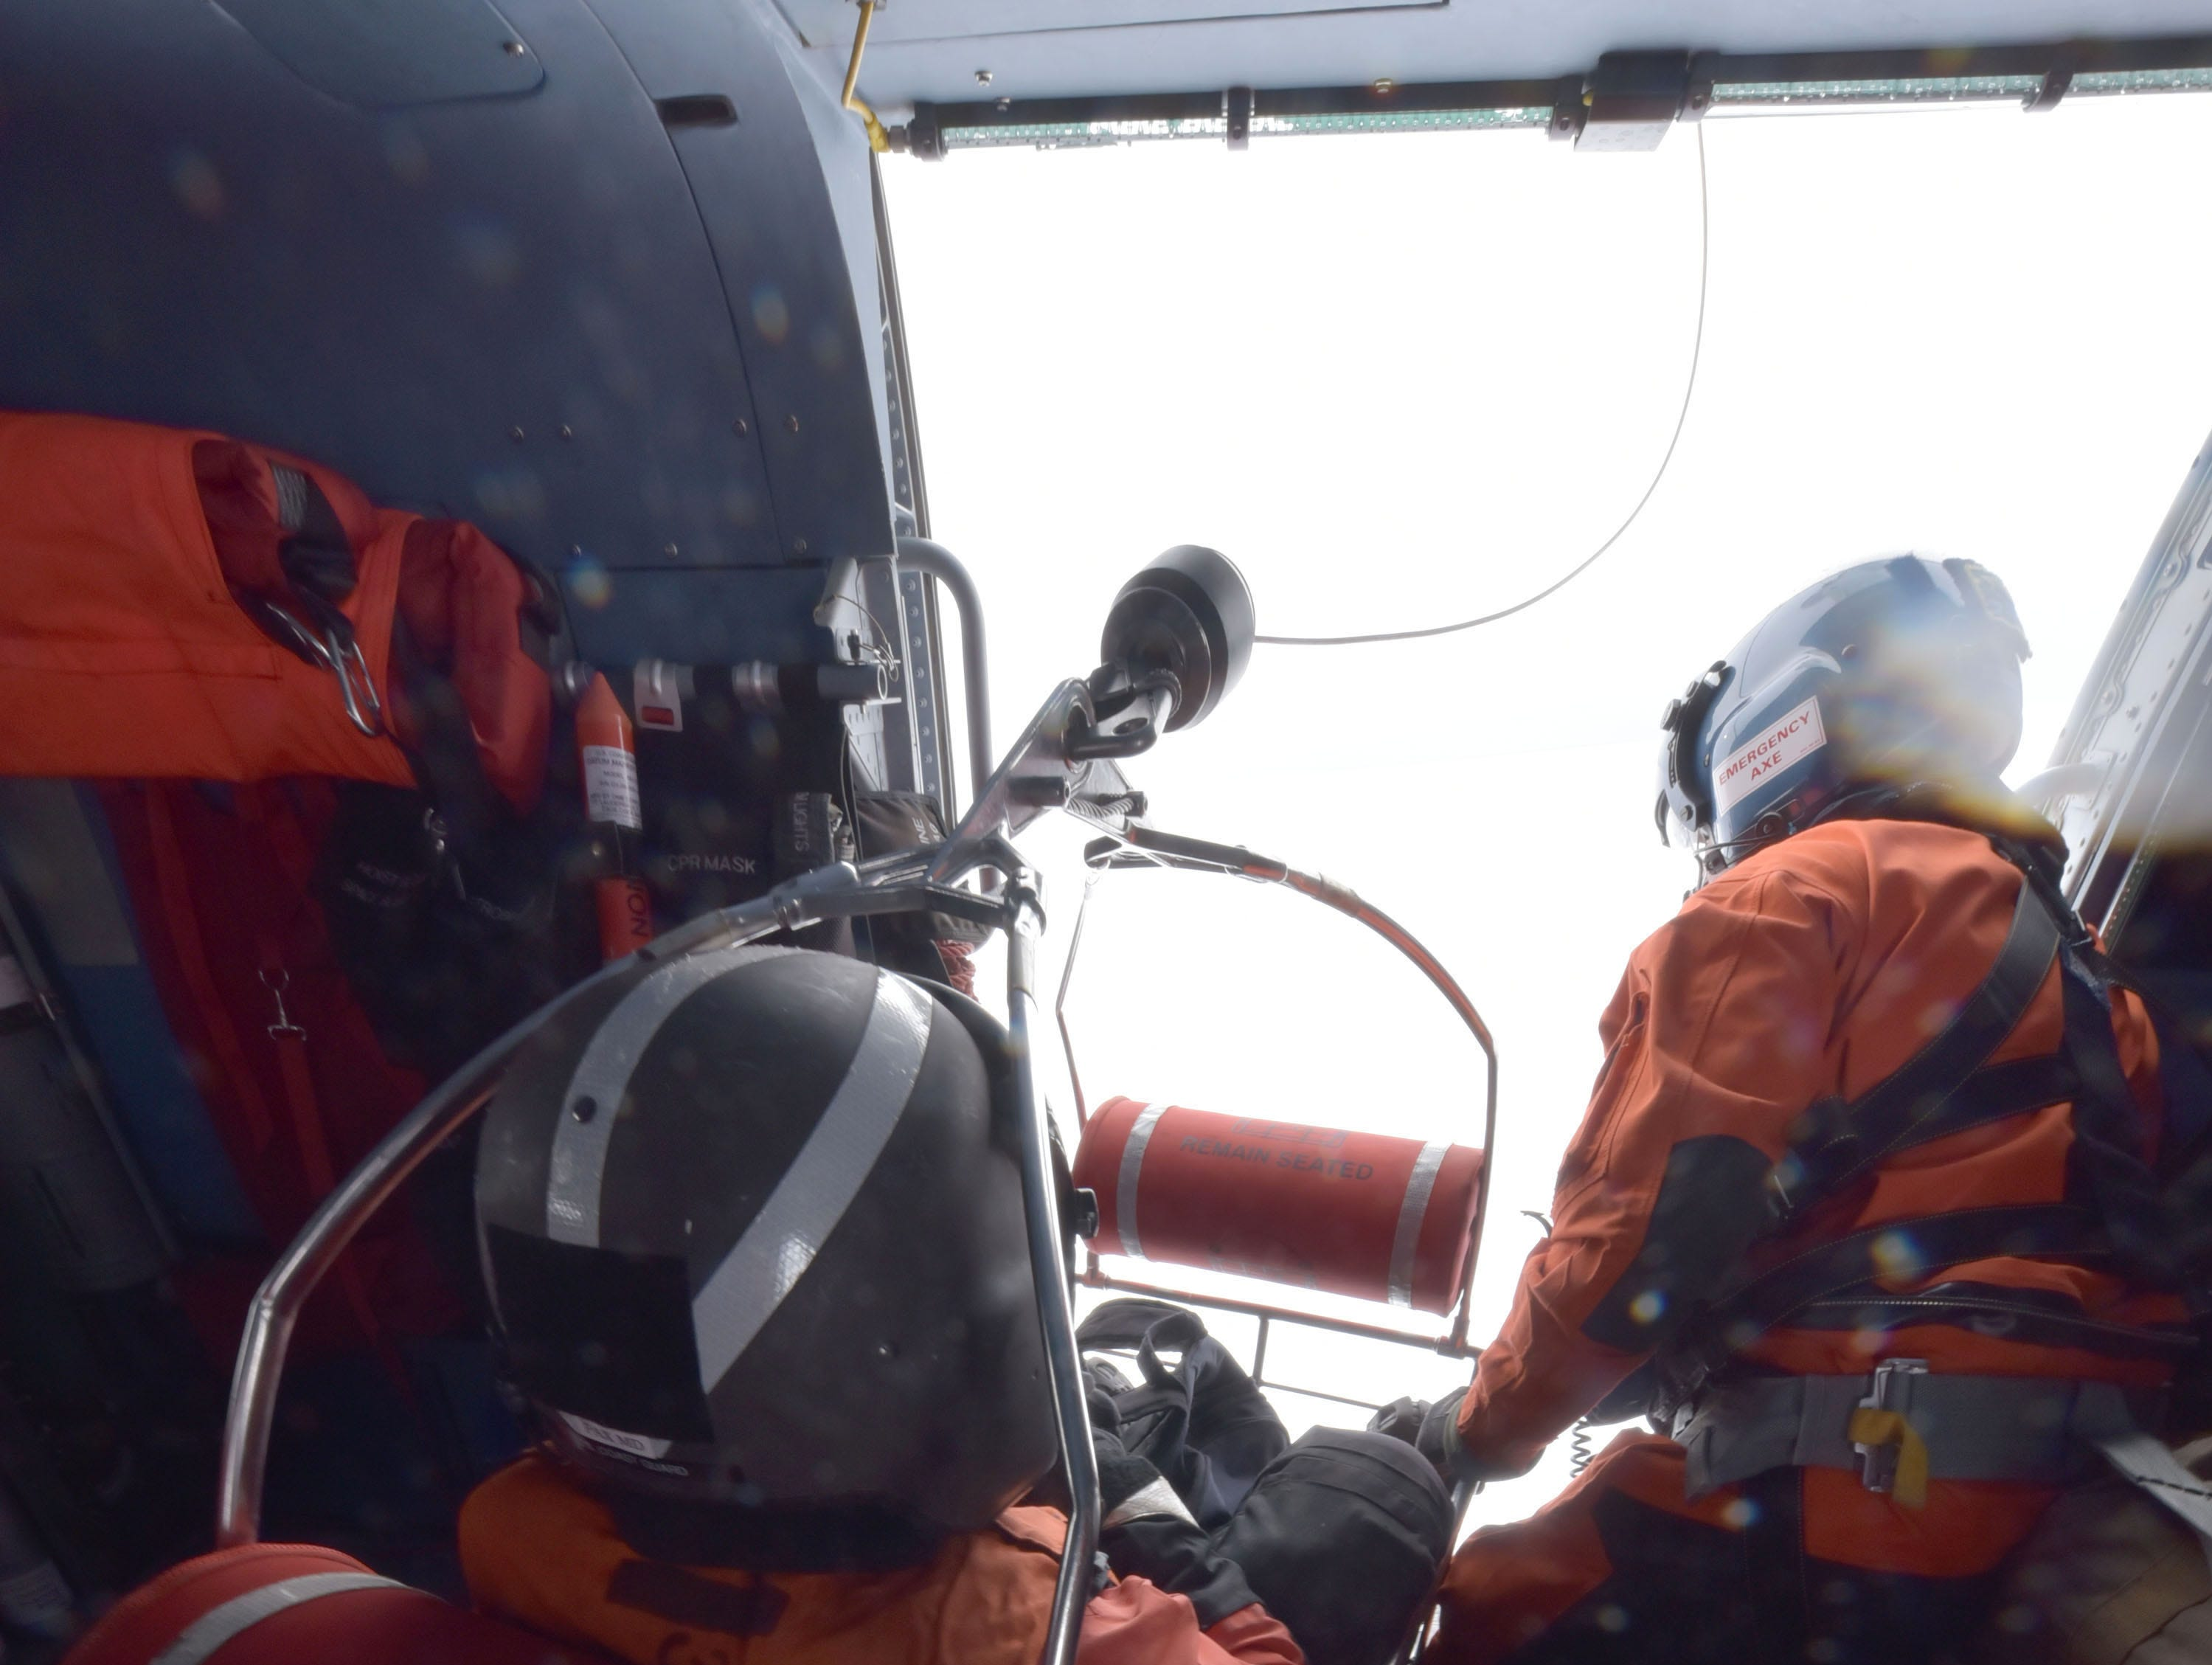 The U.S. Coast Guard John Axelson, right, prepares to lower a basket with Mike Godell to perform repair and maintenance work at the White Shoal Lighthouse in upper Lake Michigan Thursday, Feb. 14, 2019. Two Coast Guardsmen were lowered 130 feet to the ice-encrusted light from an MH-60T Jayhawk helicopter to the 109-year-old light's beacon, which is automated.